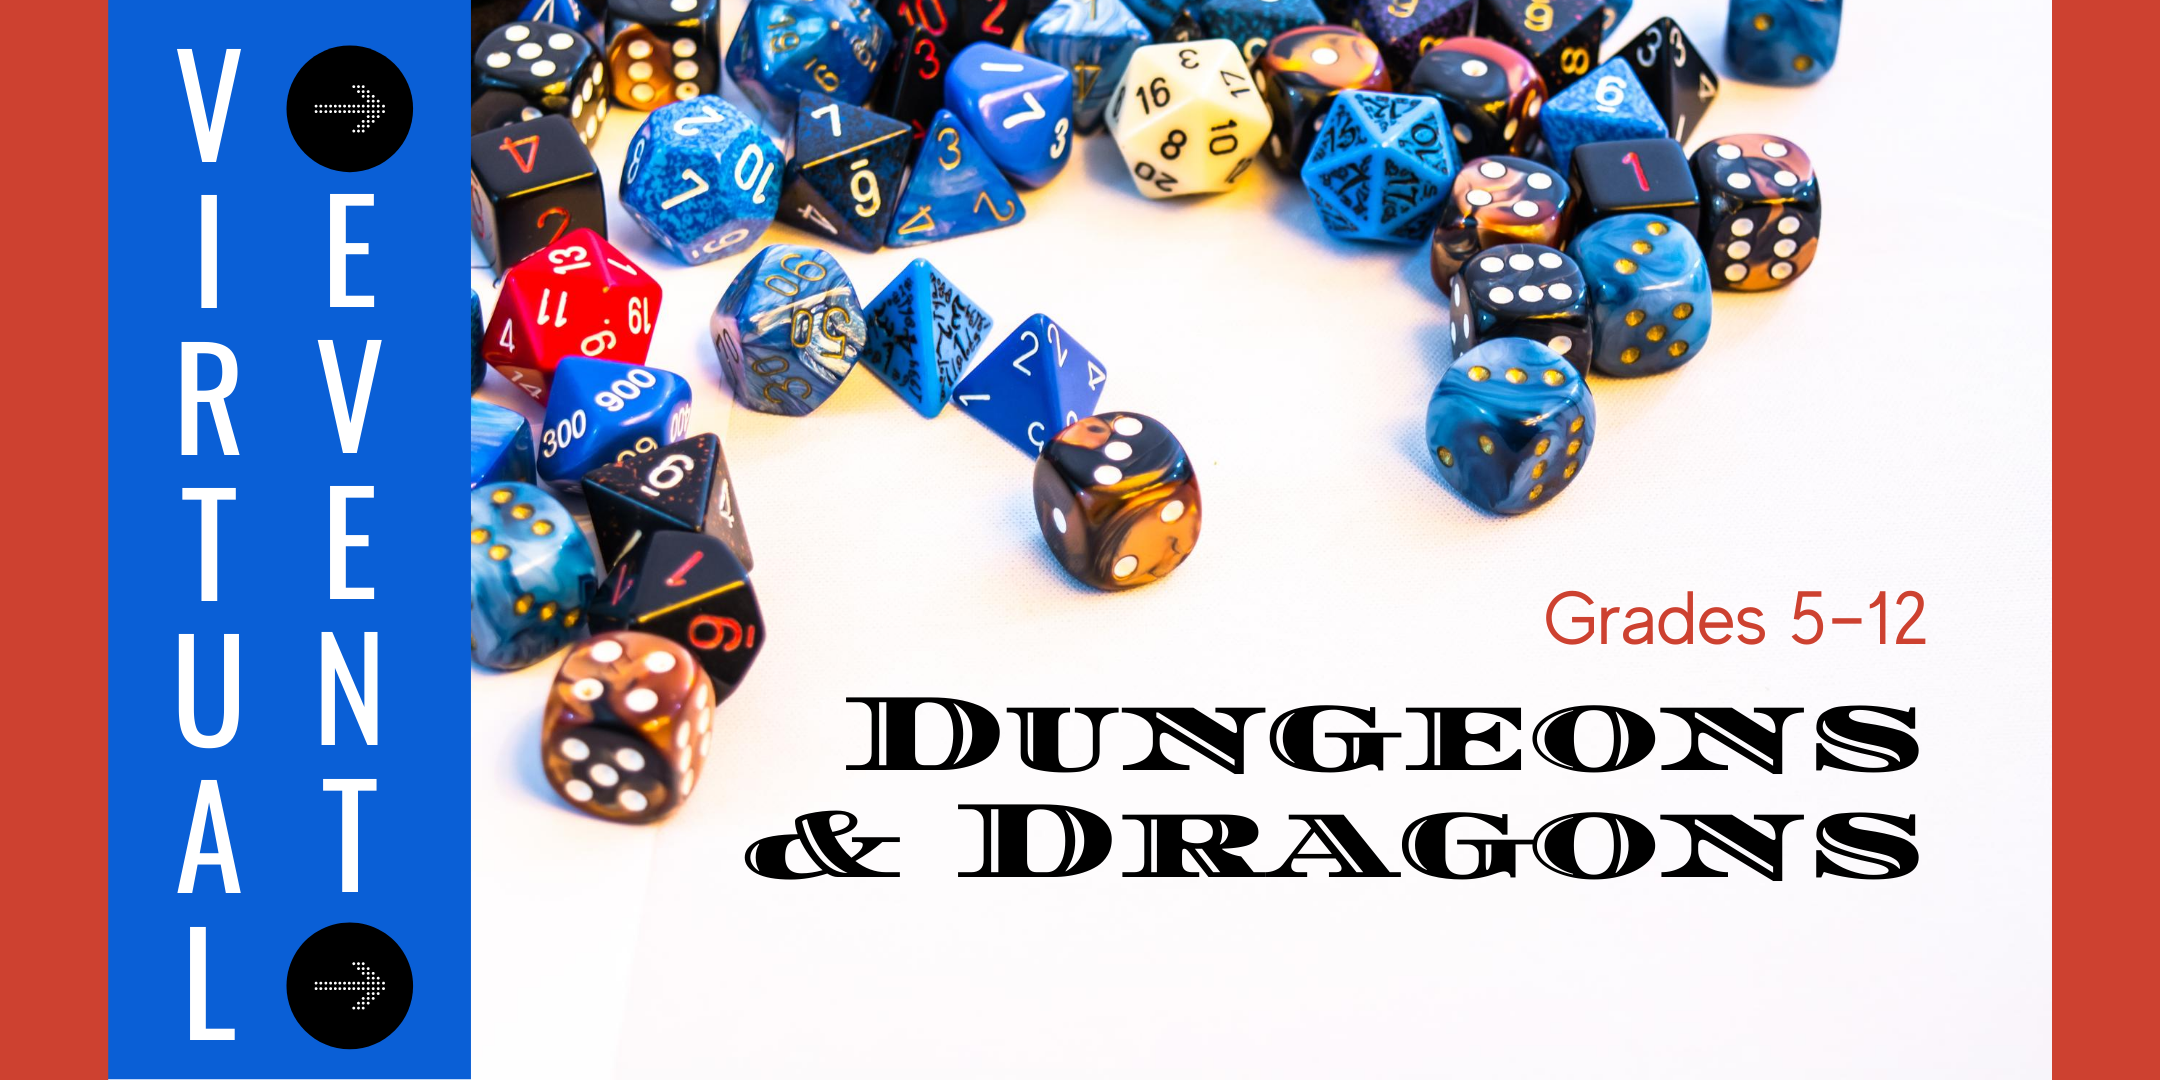 Dungeons and Dragons Grades 5–12 image